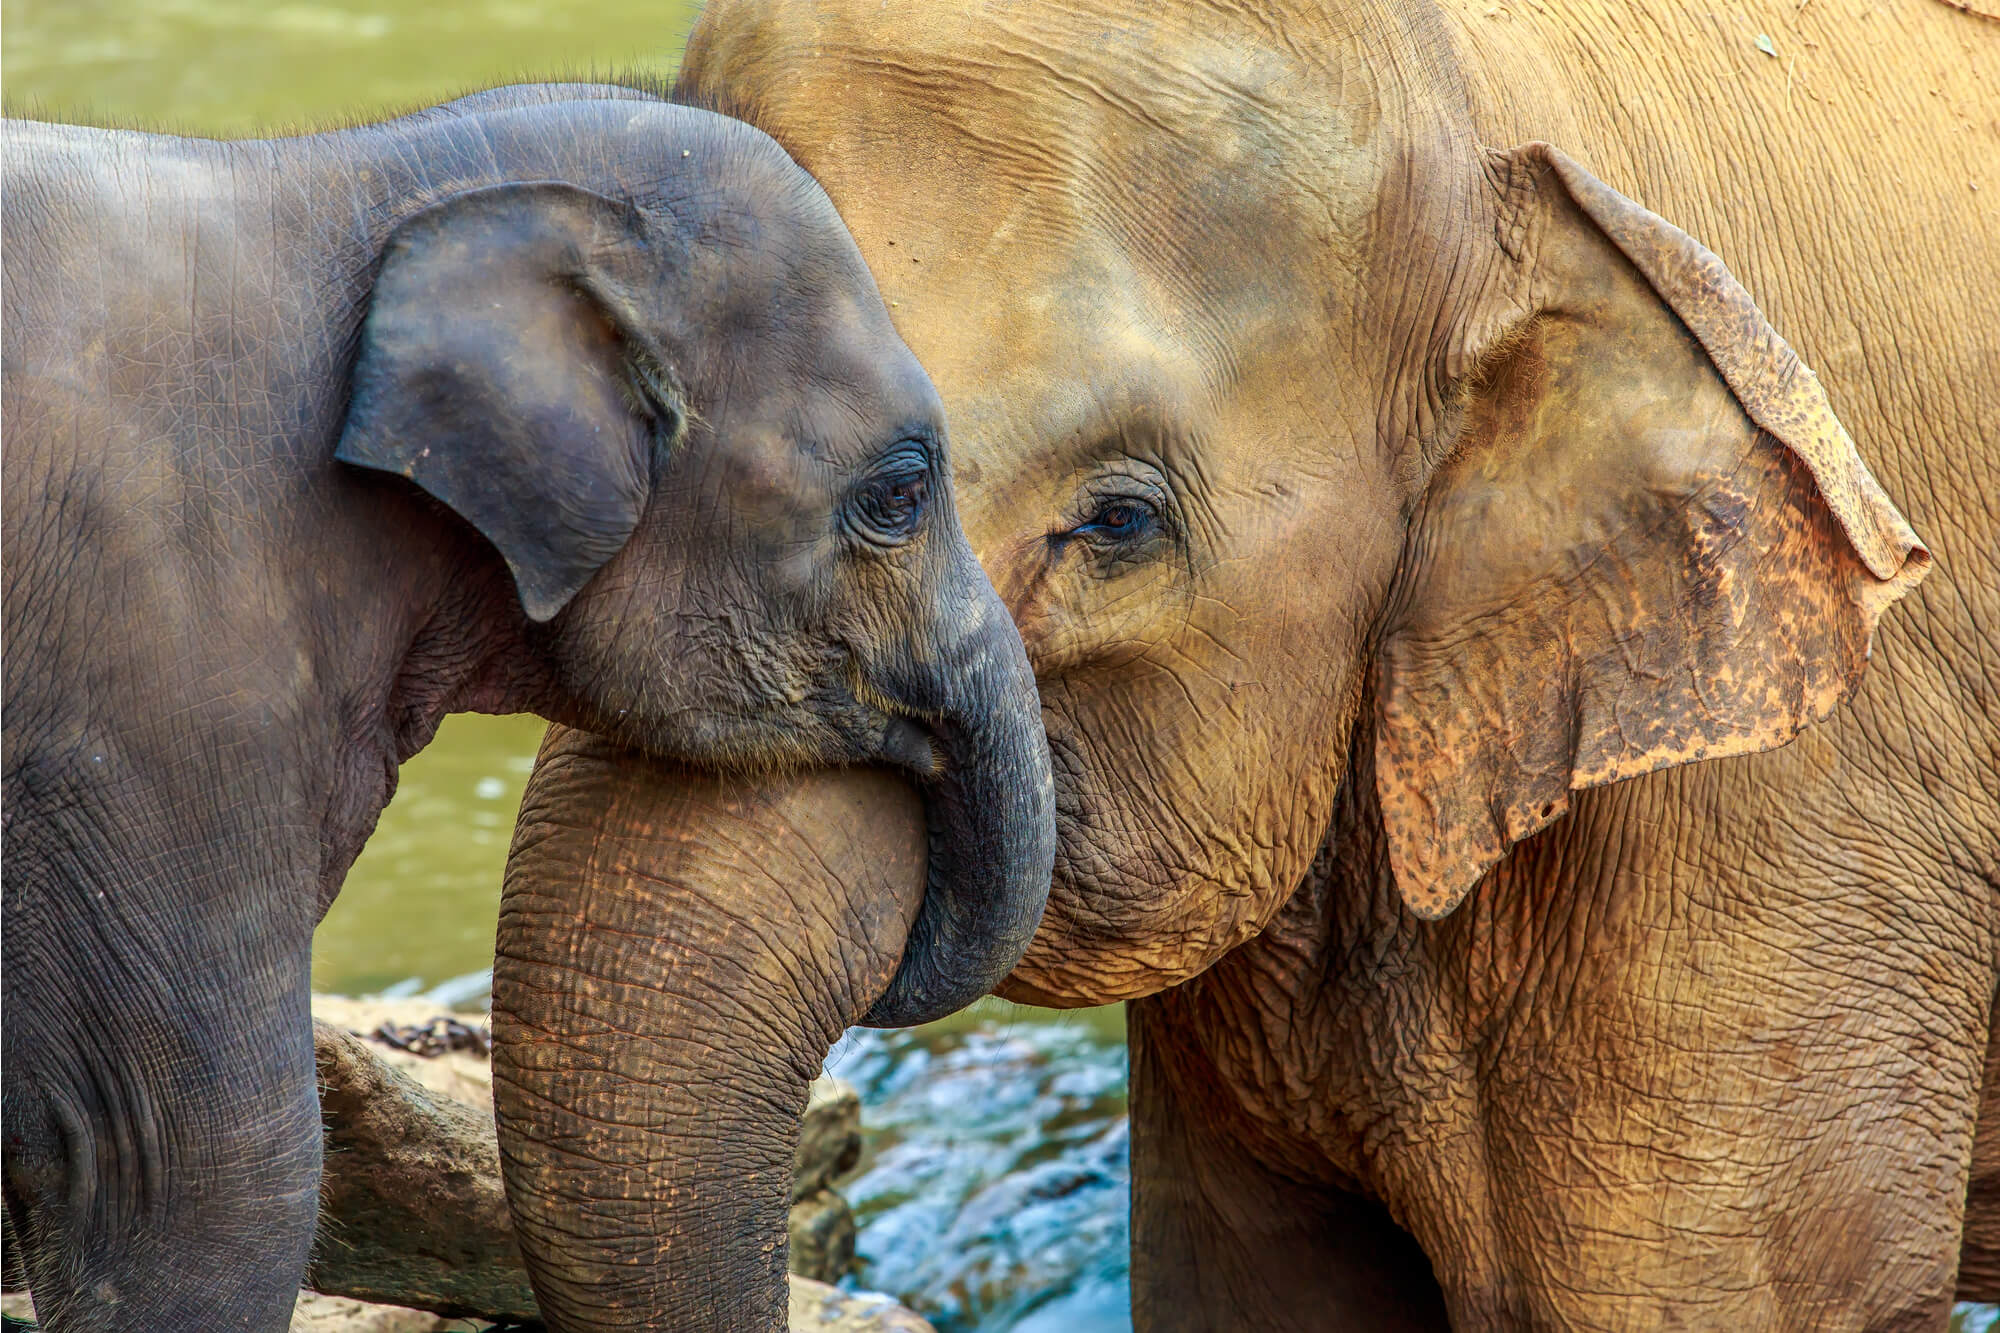 A pair of elephants in a sanctuary in Southeast Asia cuddling